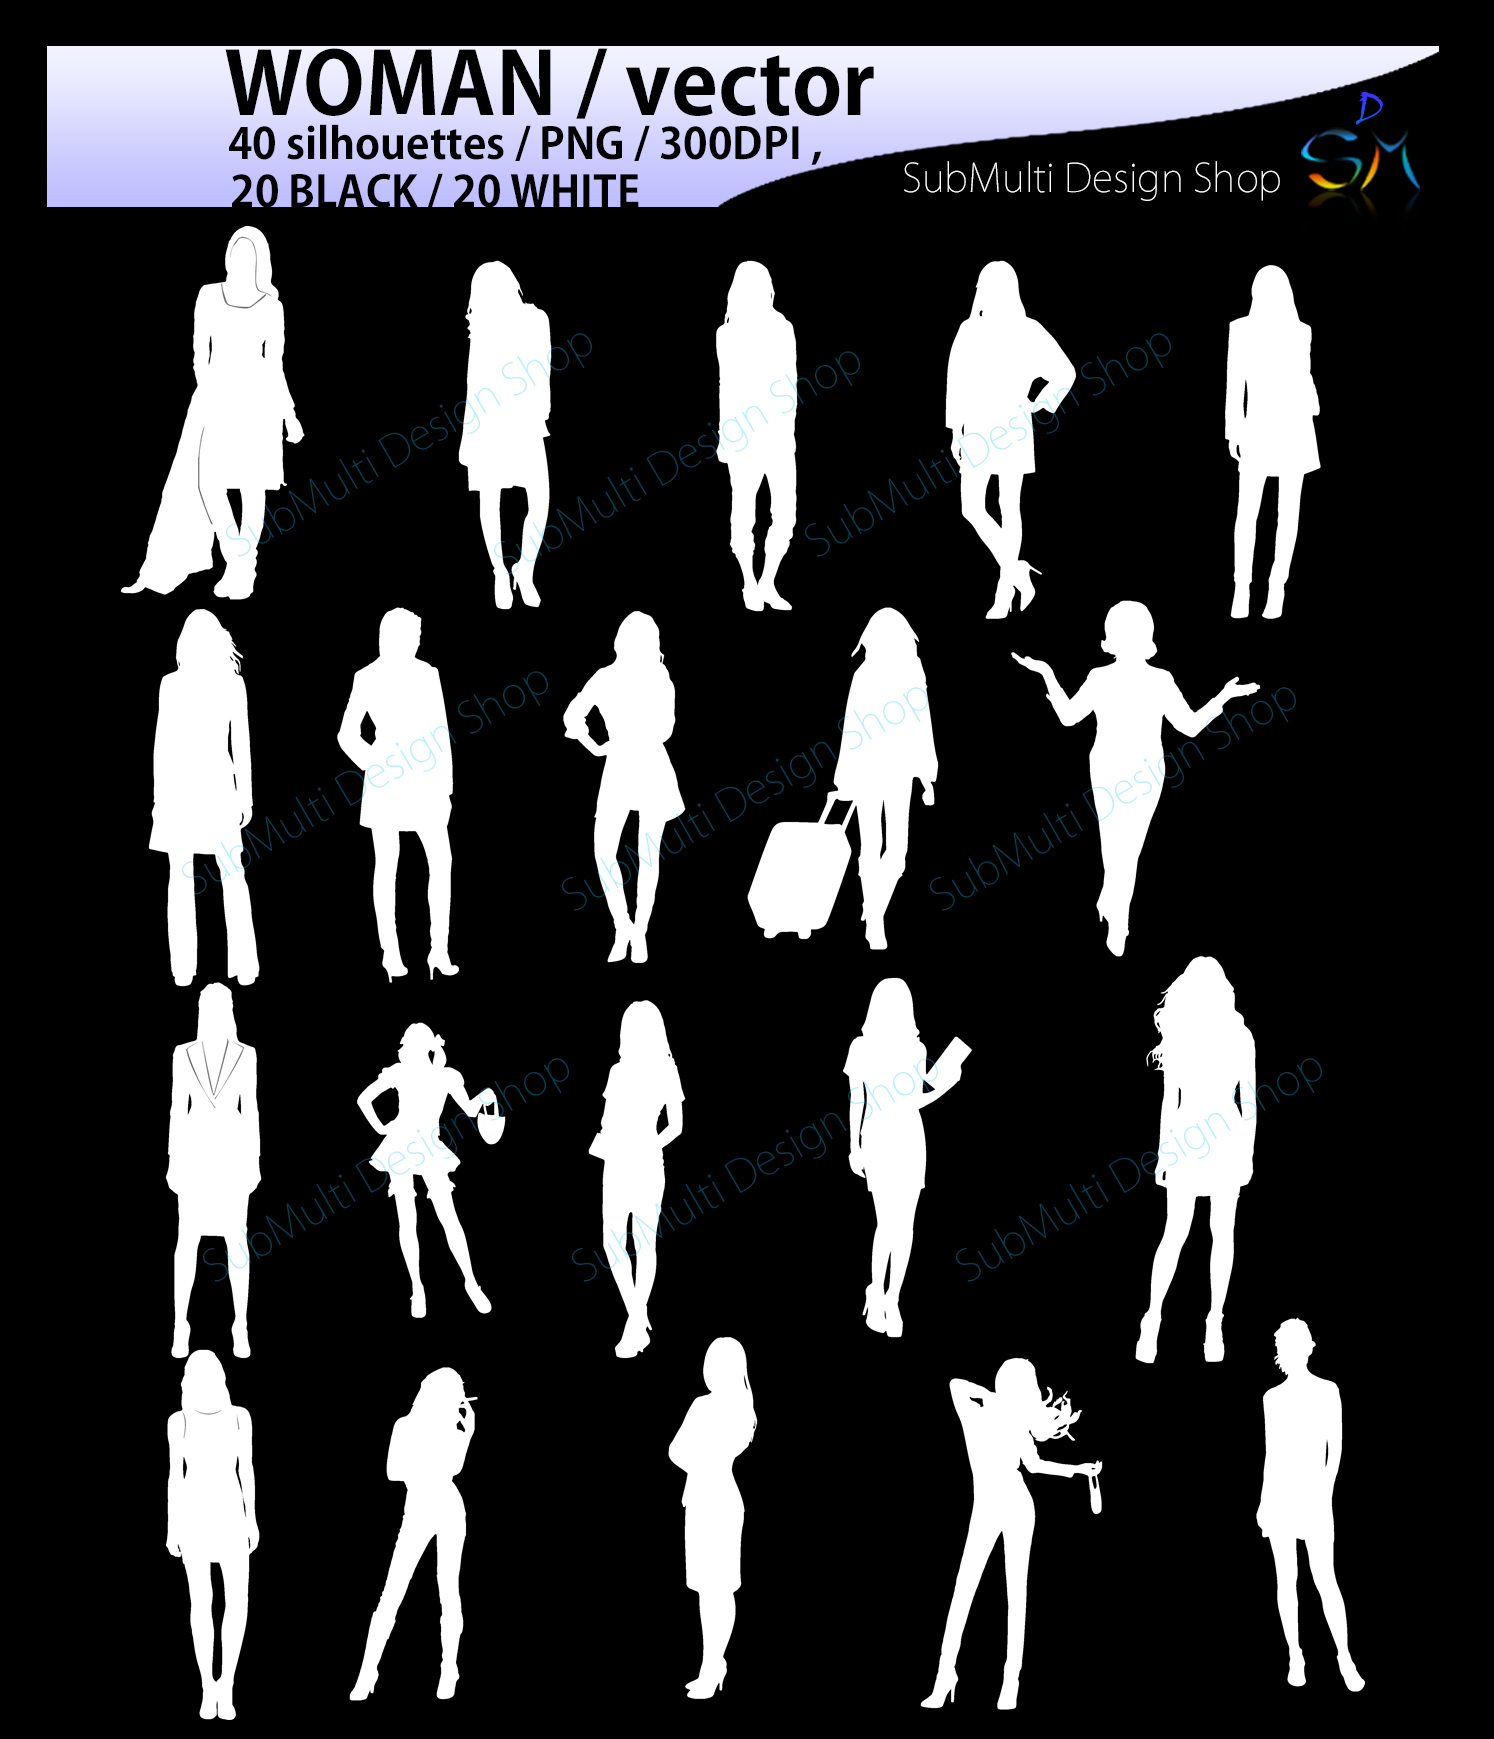 women silhouette / women svg / women clipart / printable women silhouette / standing women / 300dpi / PNG / EPS / SVG /black and white example image 3